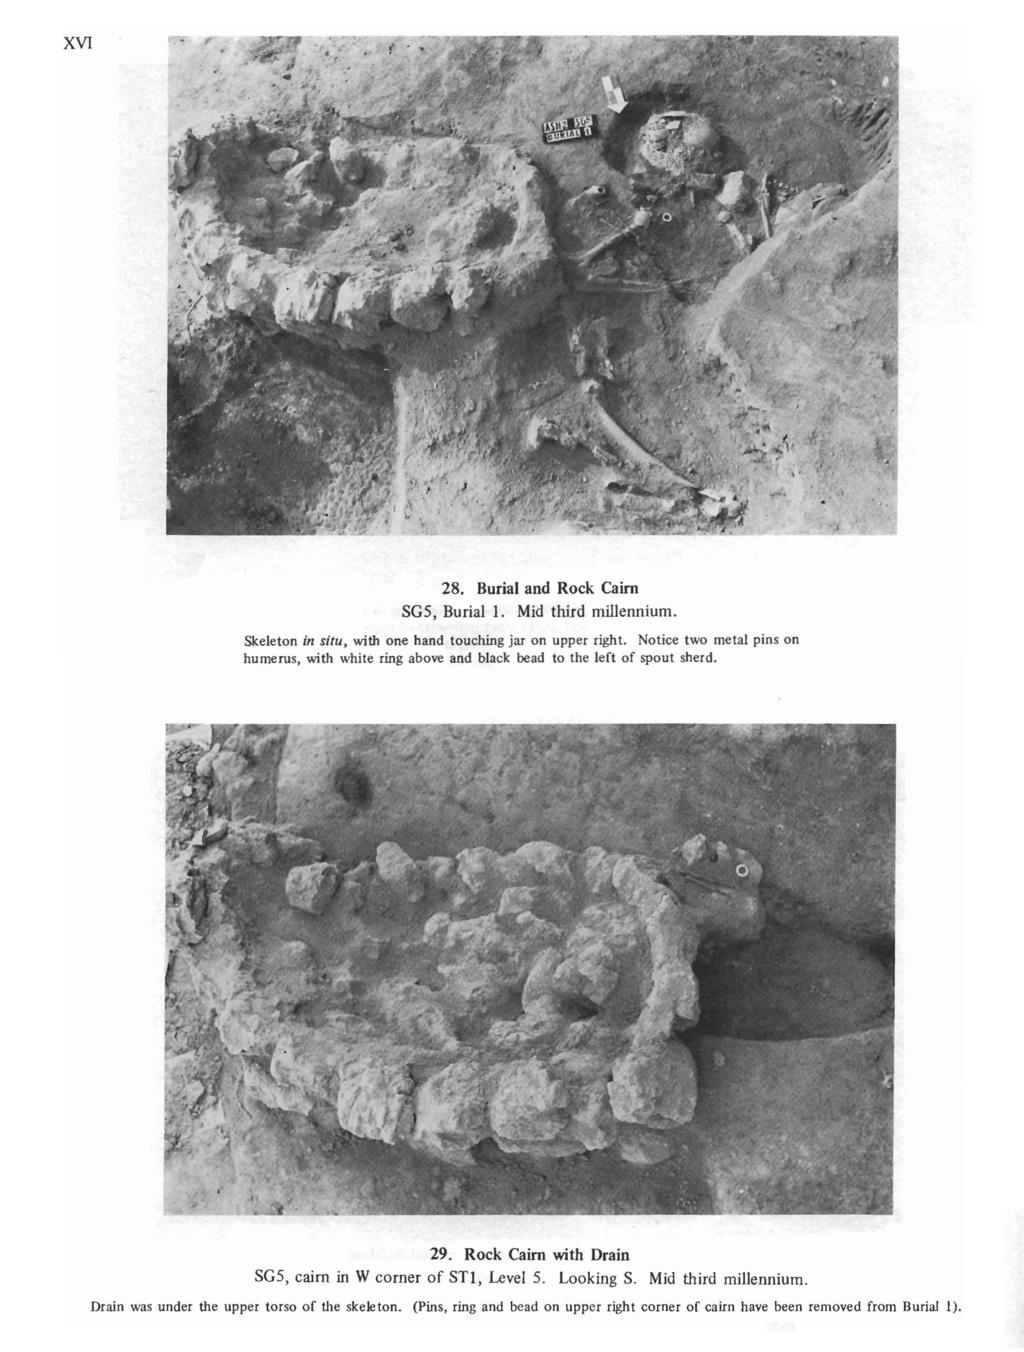 XVI 28. Burial and Rock Cairn SG5, Burial 1. Mid third millennium. Skeleton in situ, with one hand touching jar on upper right.